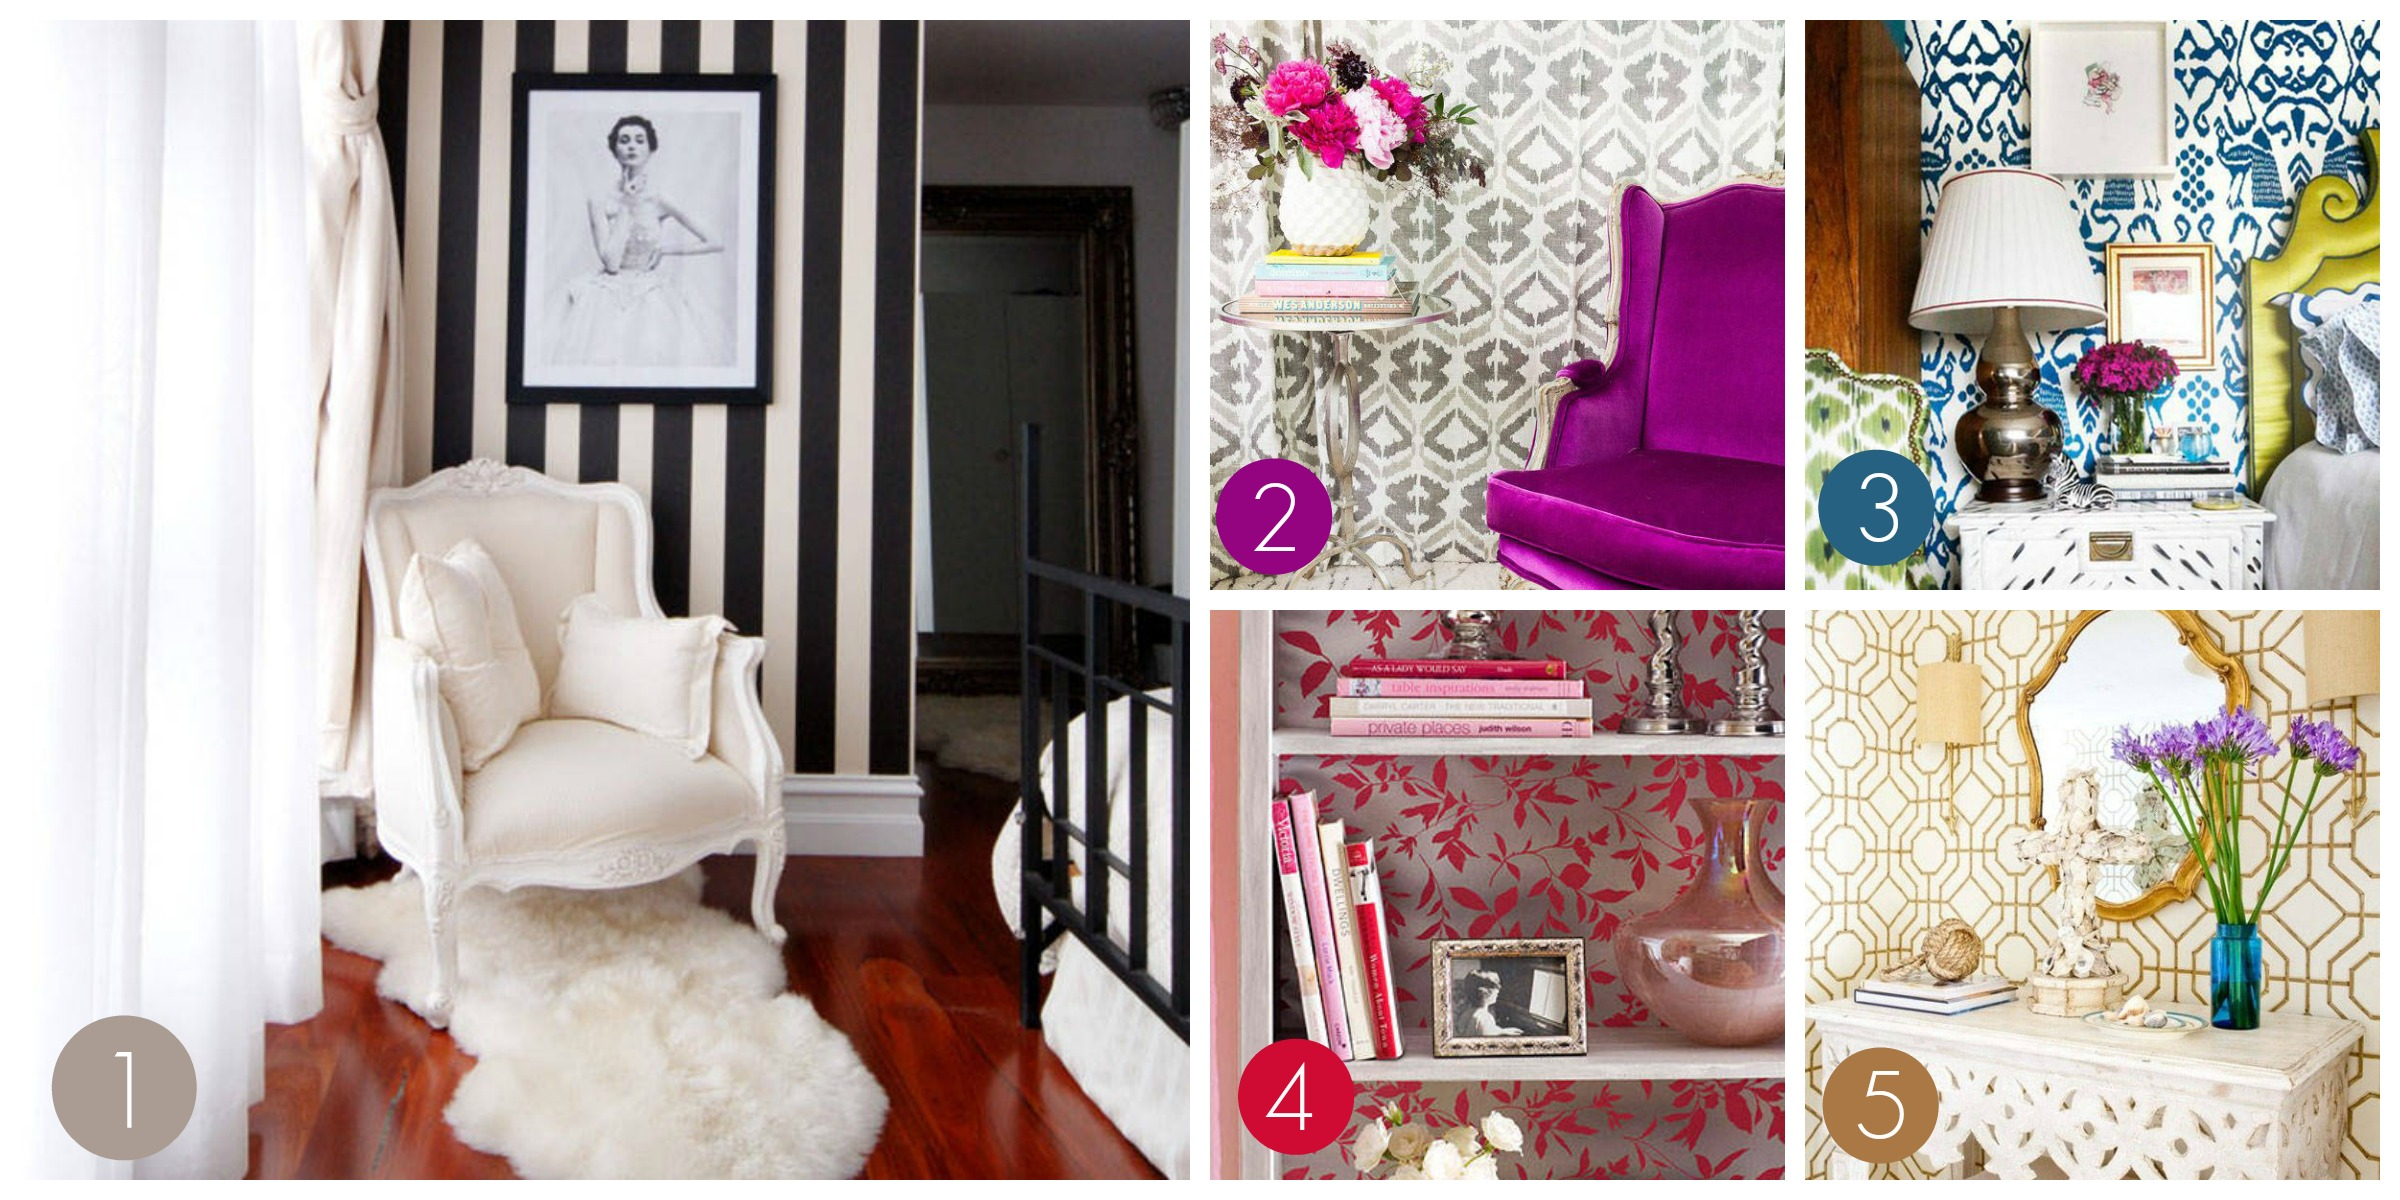 Home Decor Trends 12 popular home dcor trends for 2016 quicken loans zing blog Picmonkey Collage